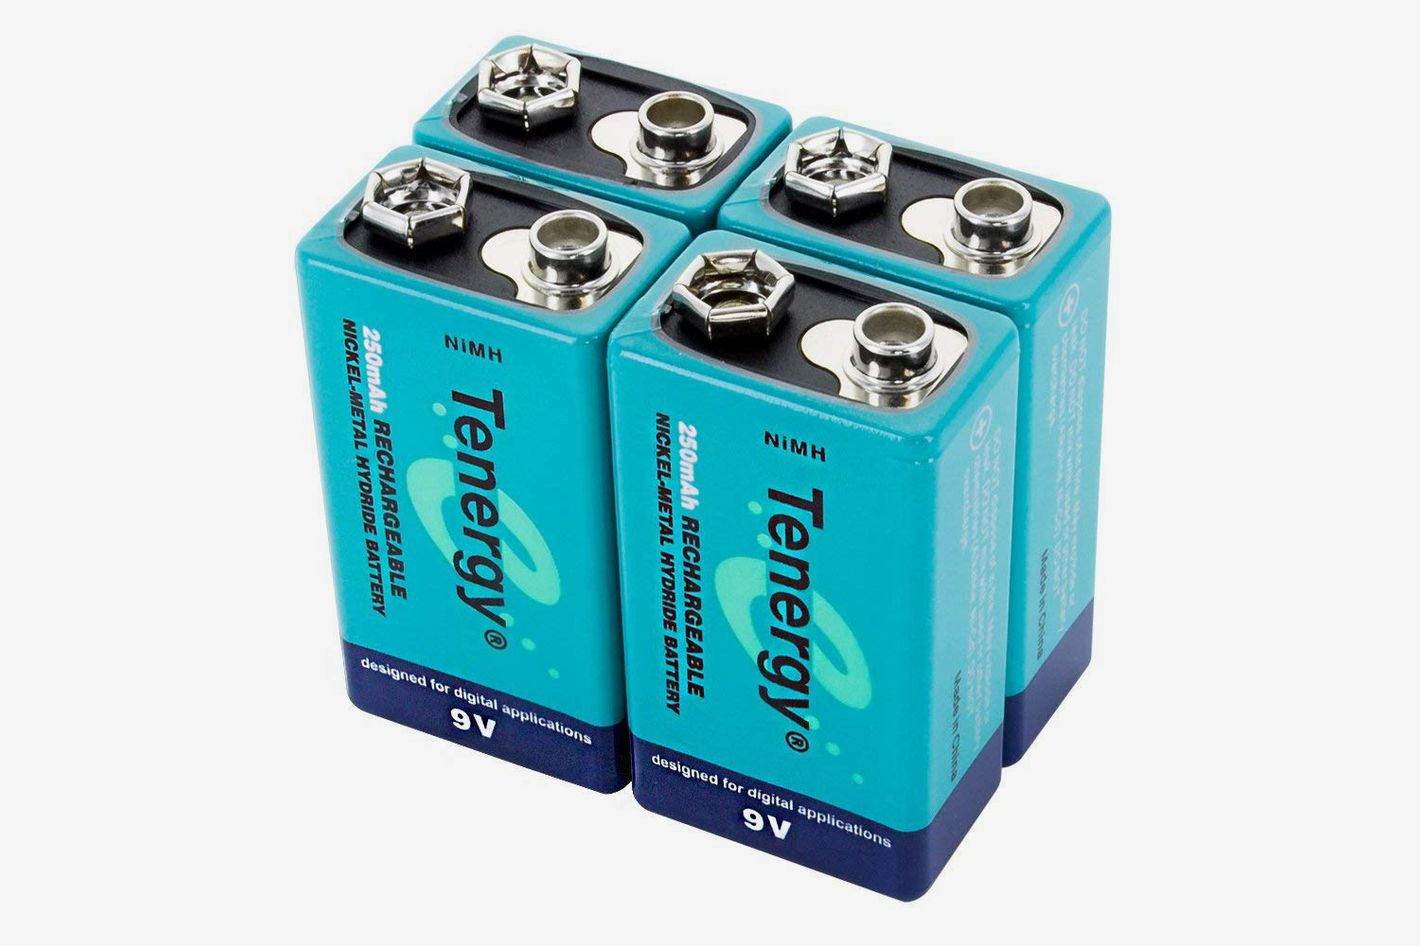 Tenergy 9V High Capacity Rechargeable Batteries (4-Pack)